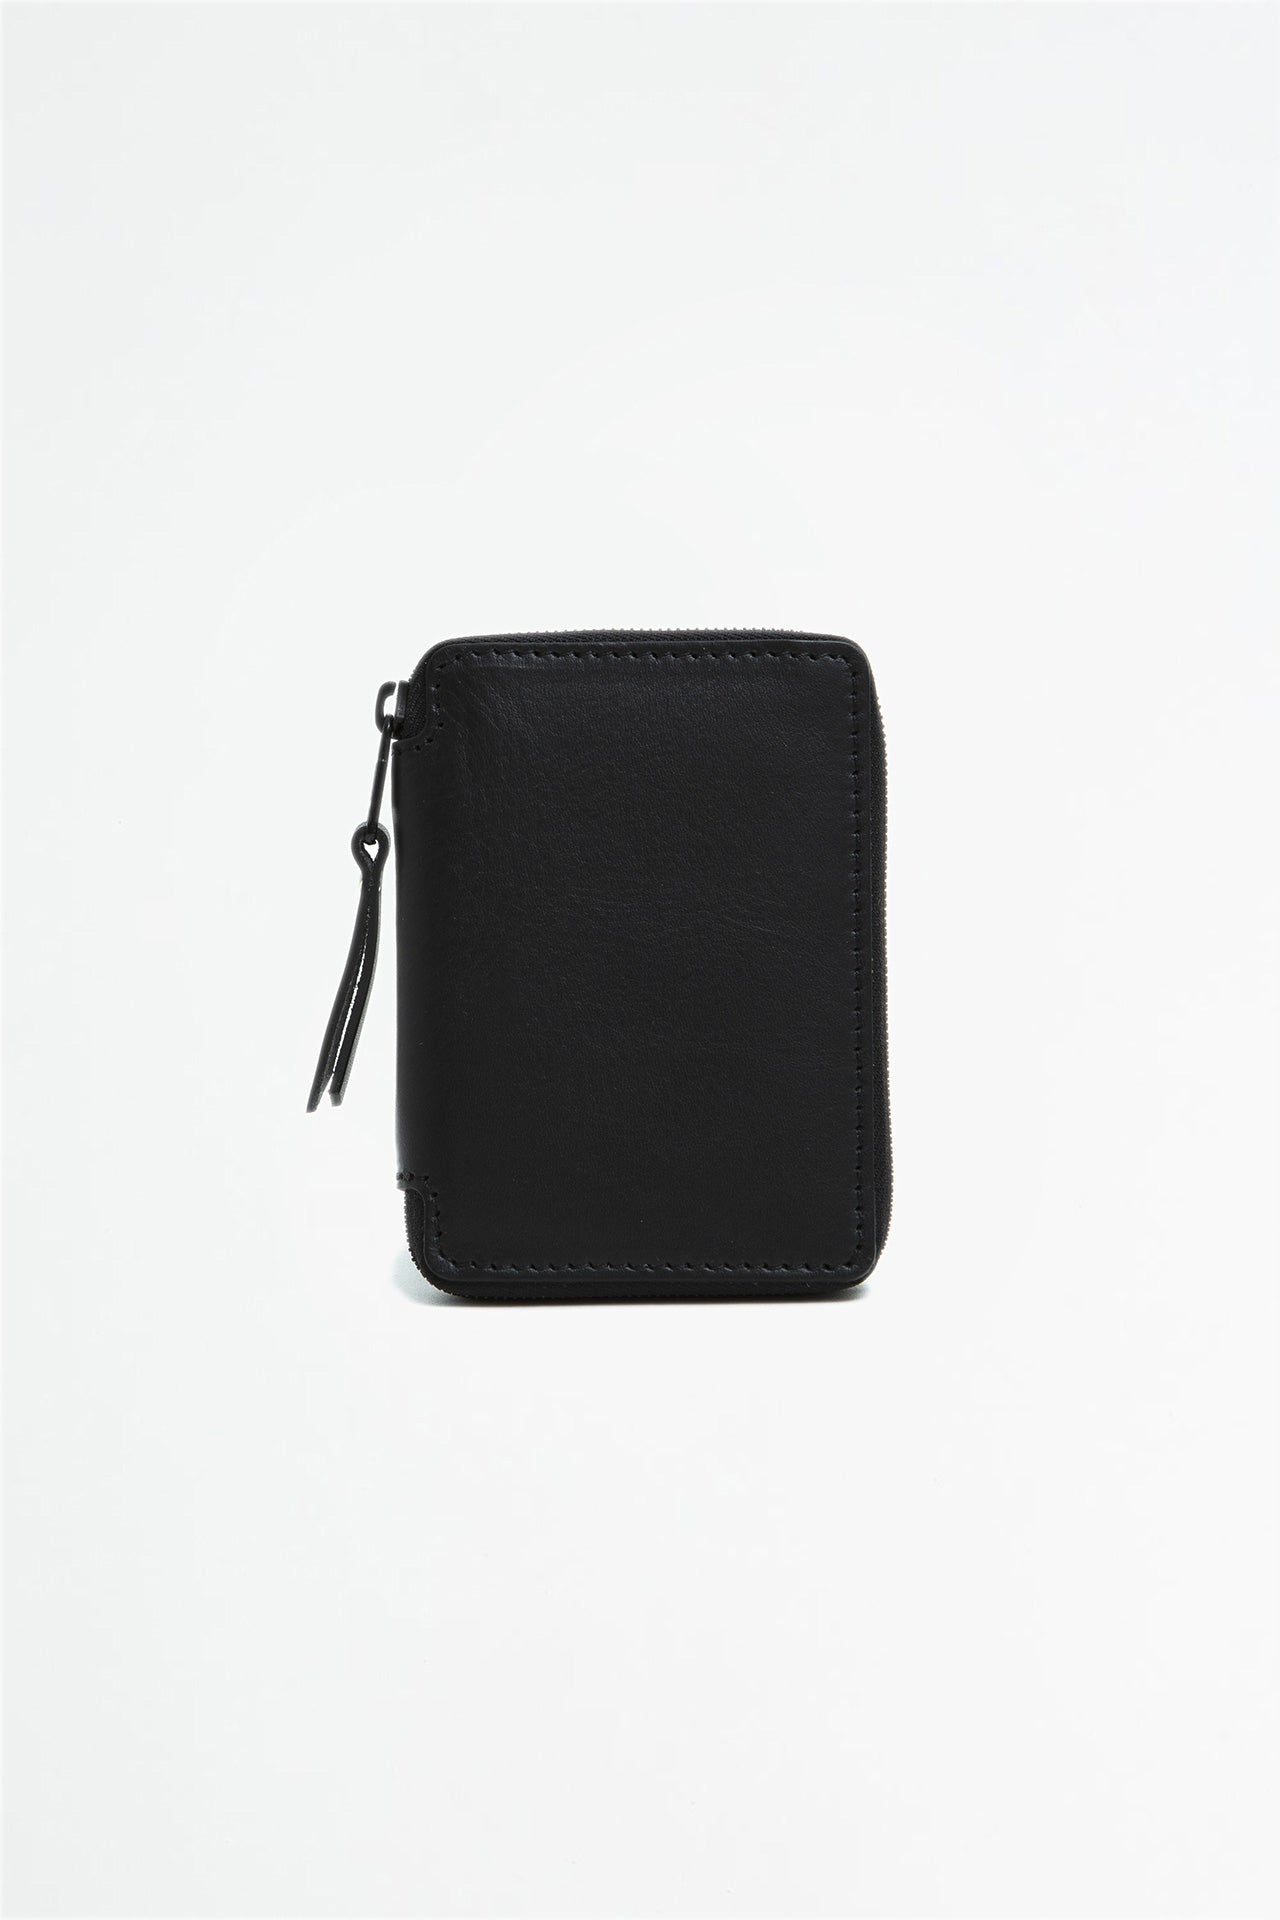 Small zipped wallet black and green